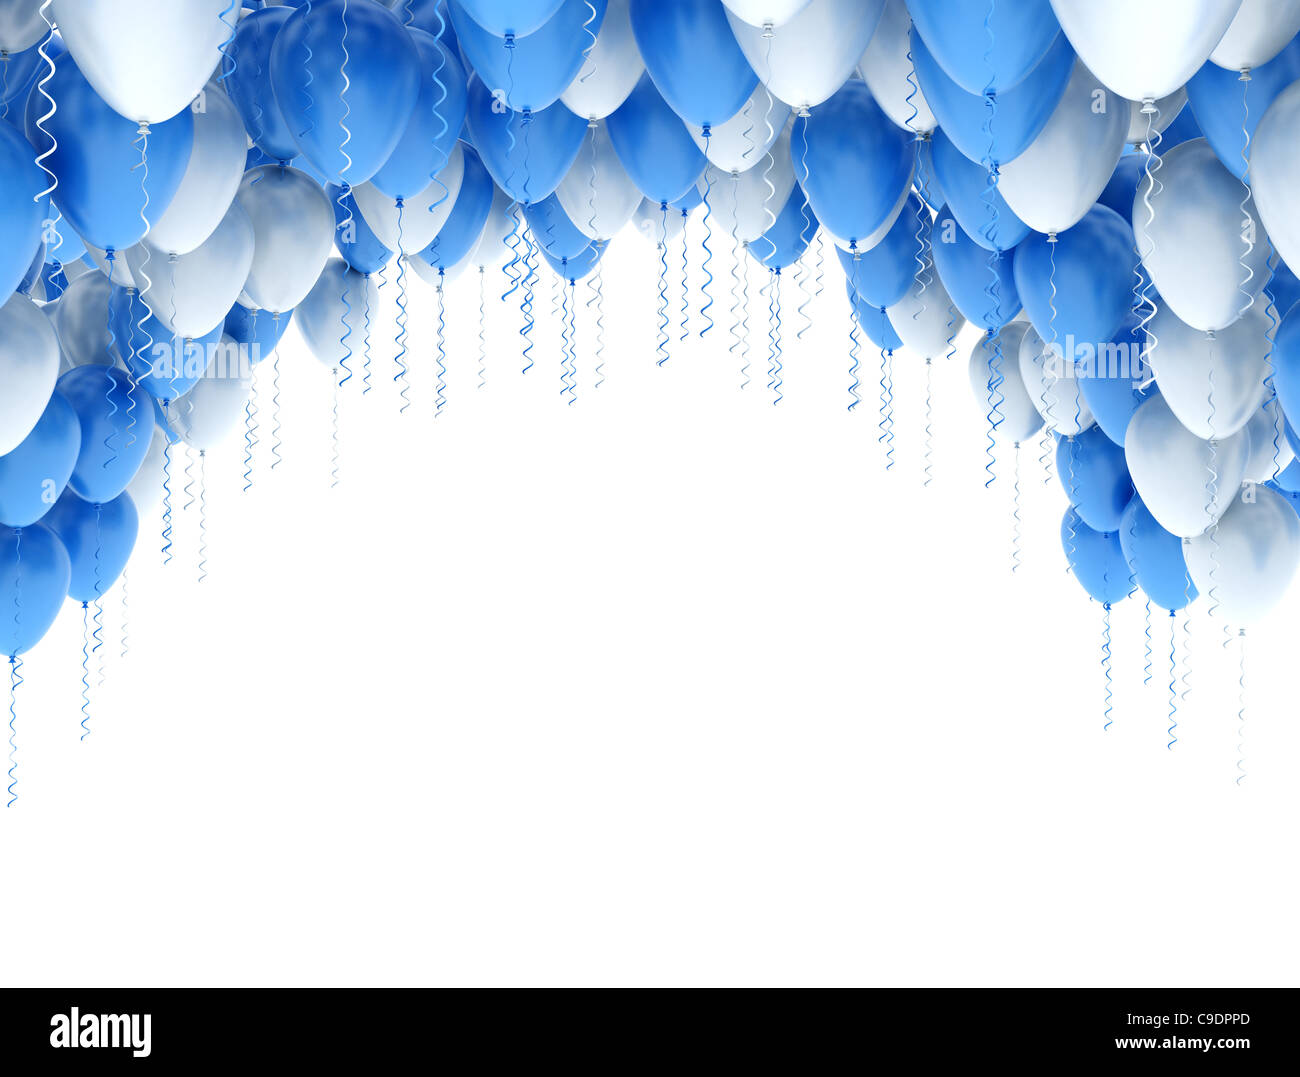 Blue and white party balloons frame on white background Stock Photo ...